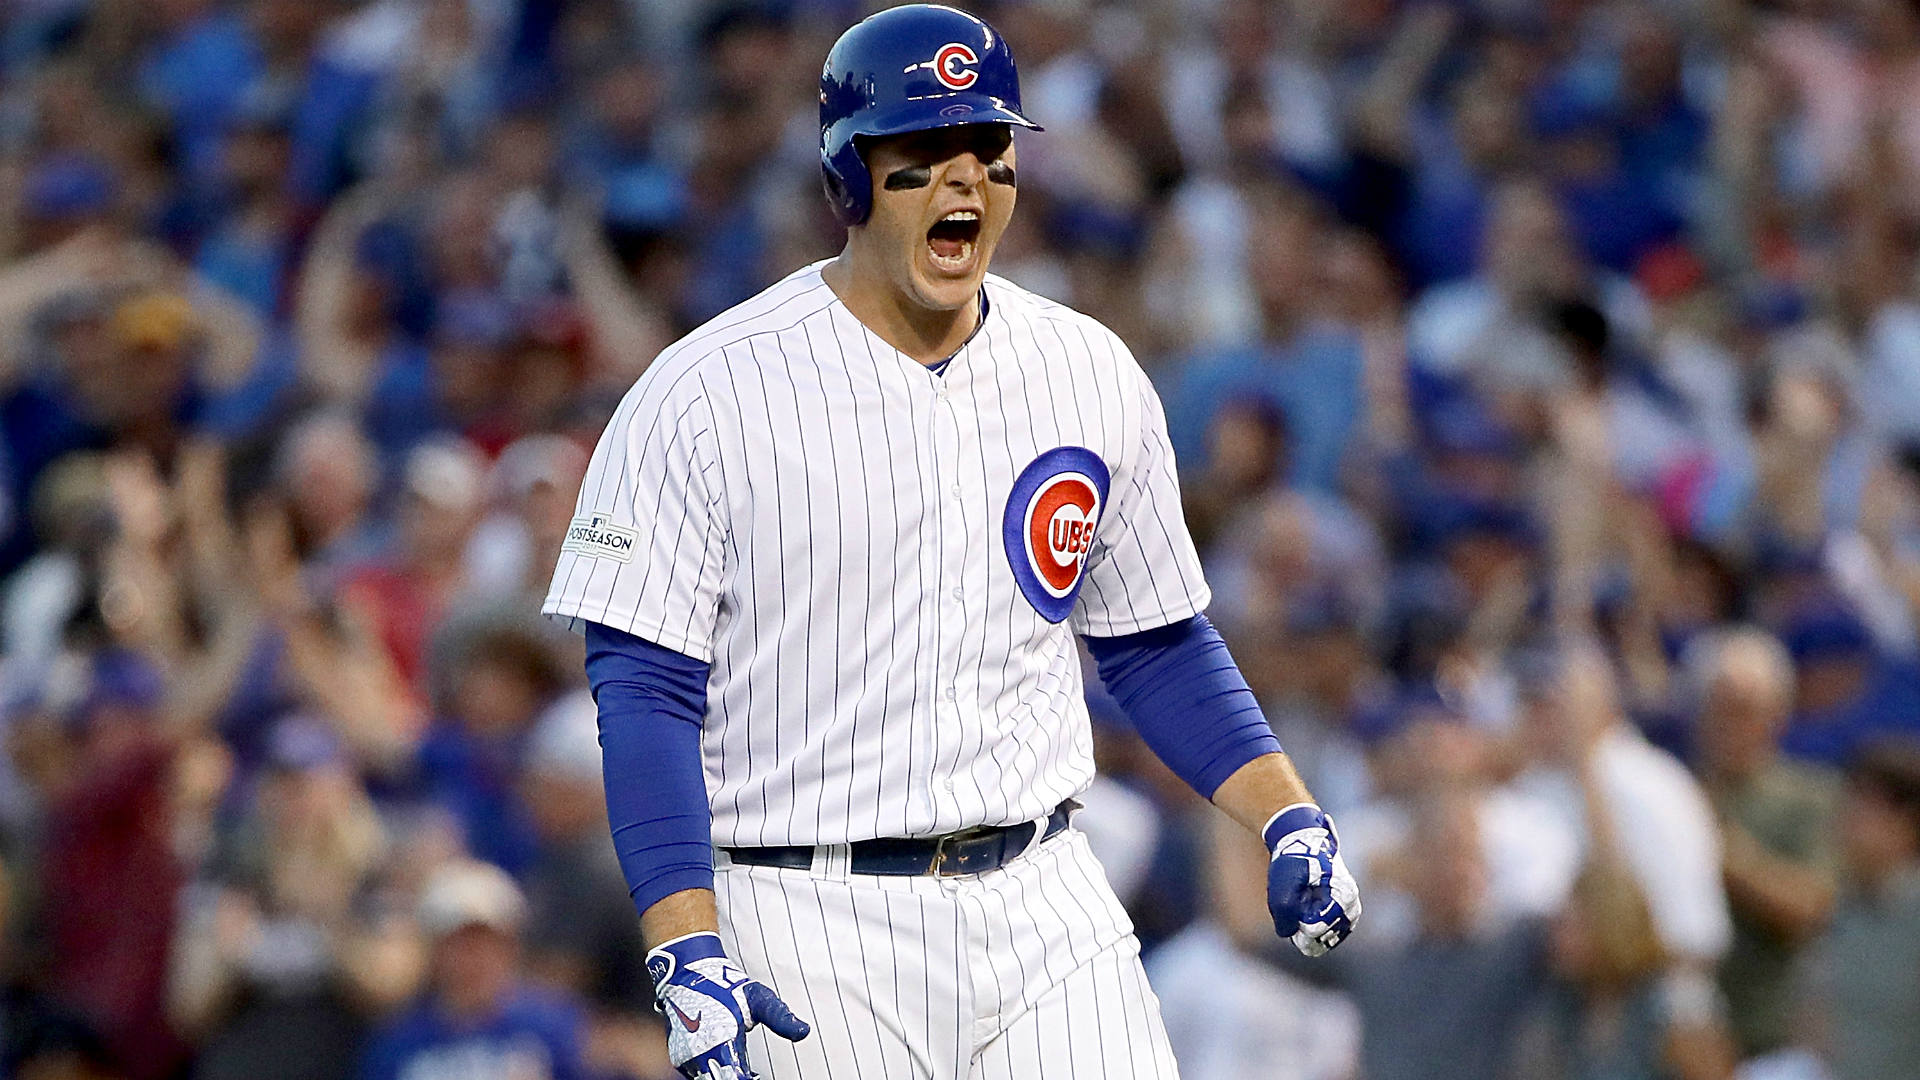 Powell: The Cubs can thank Jose Quintana for their Game 3 victory